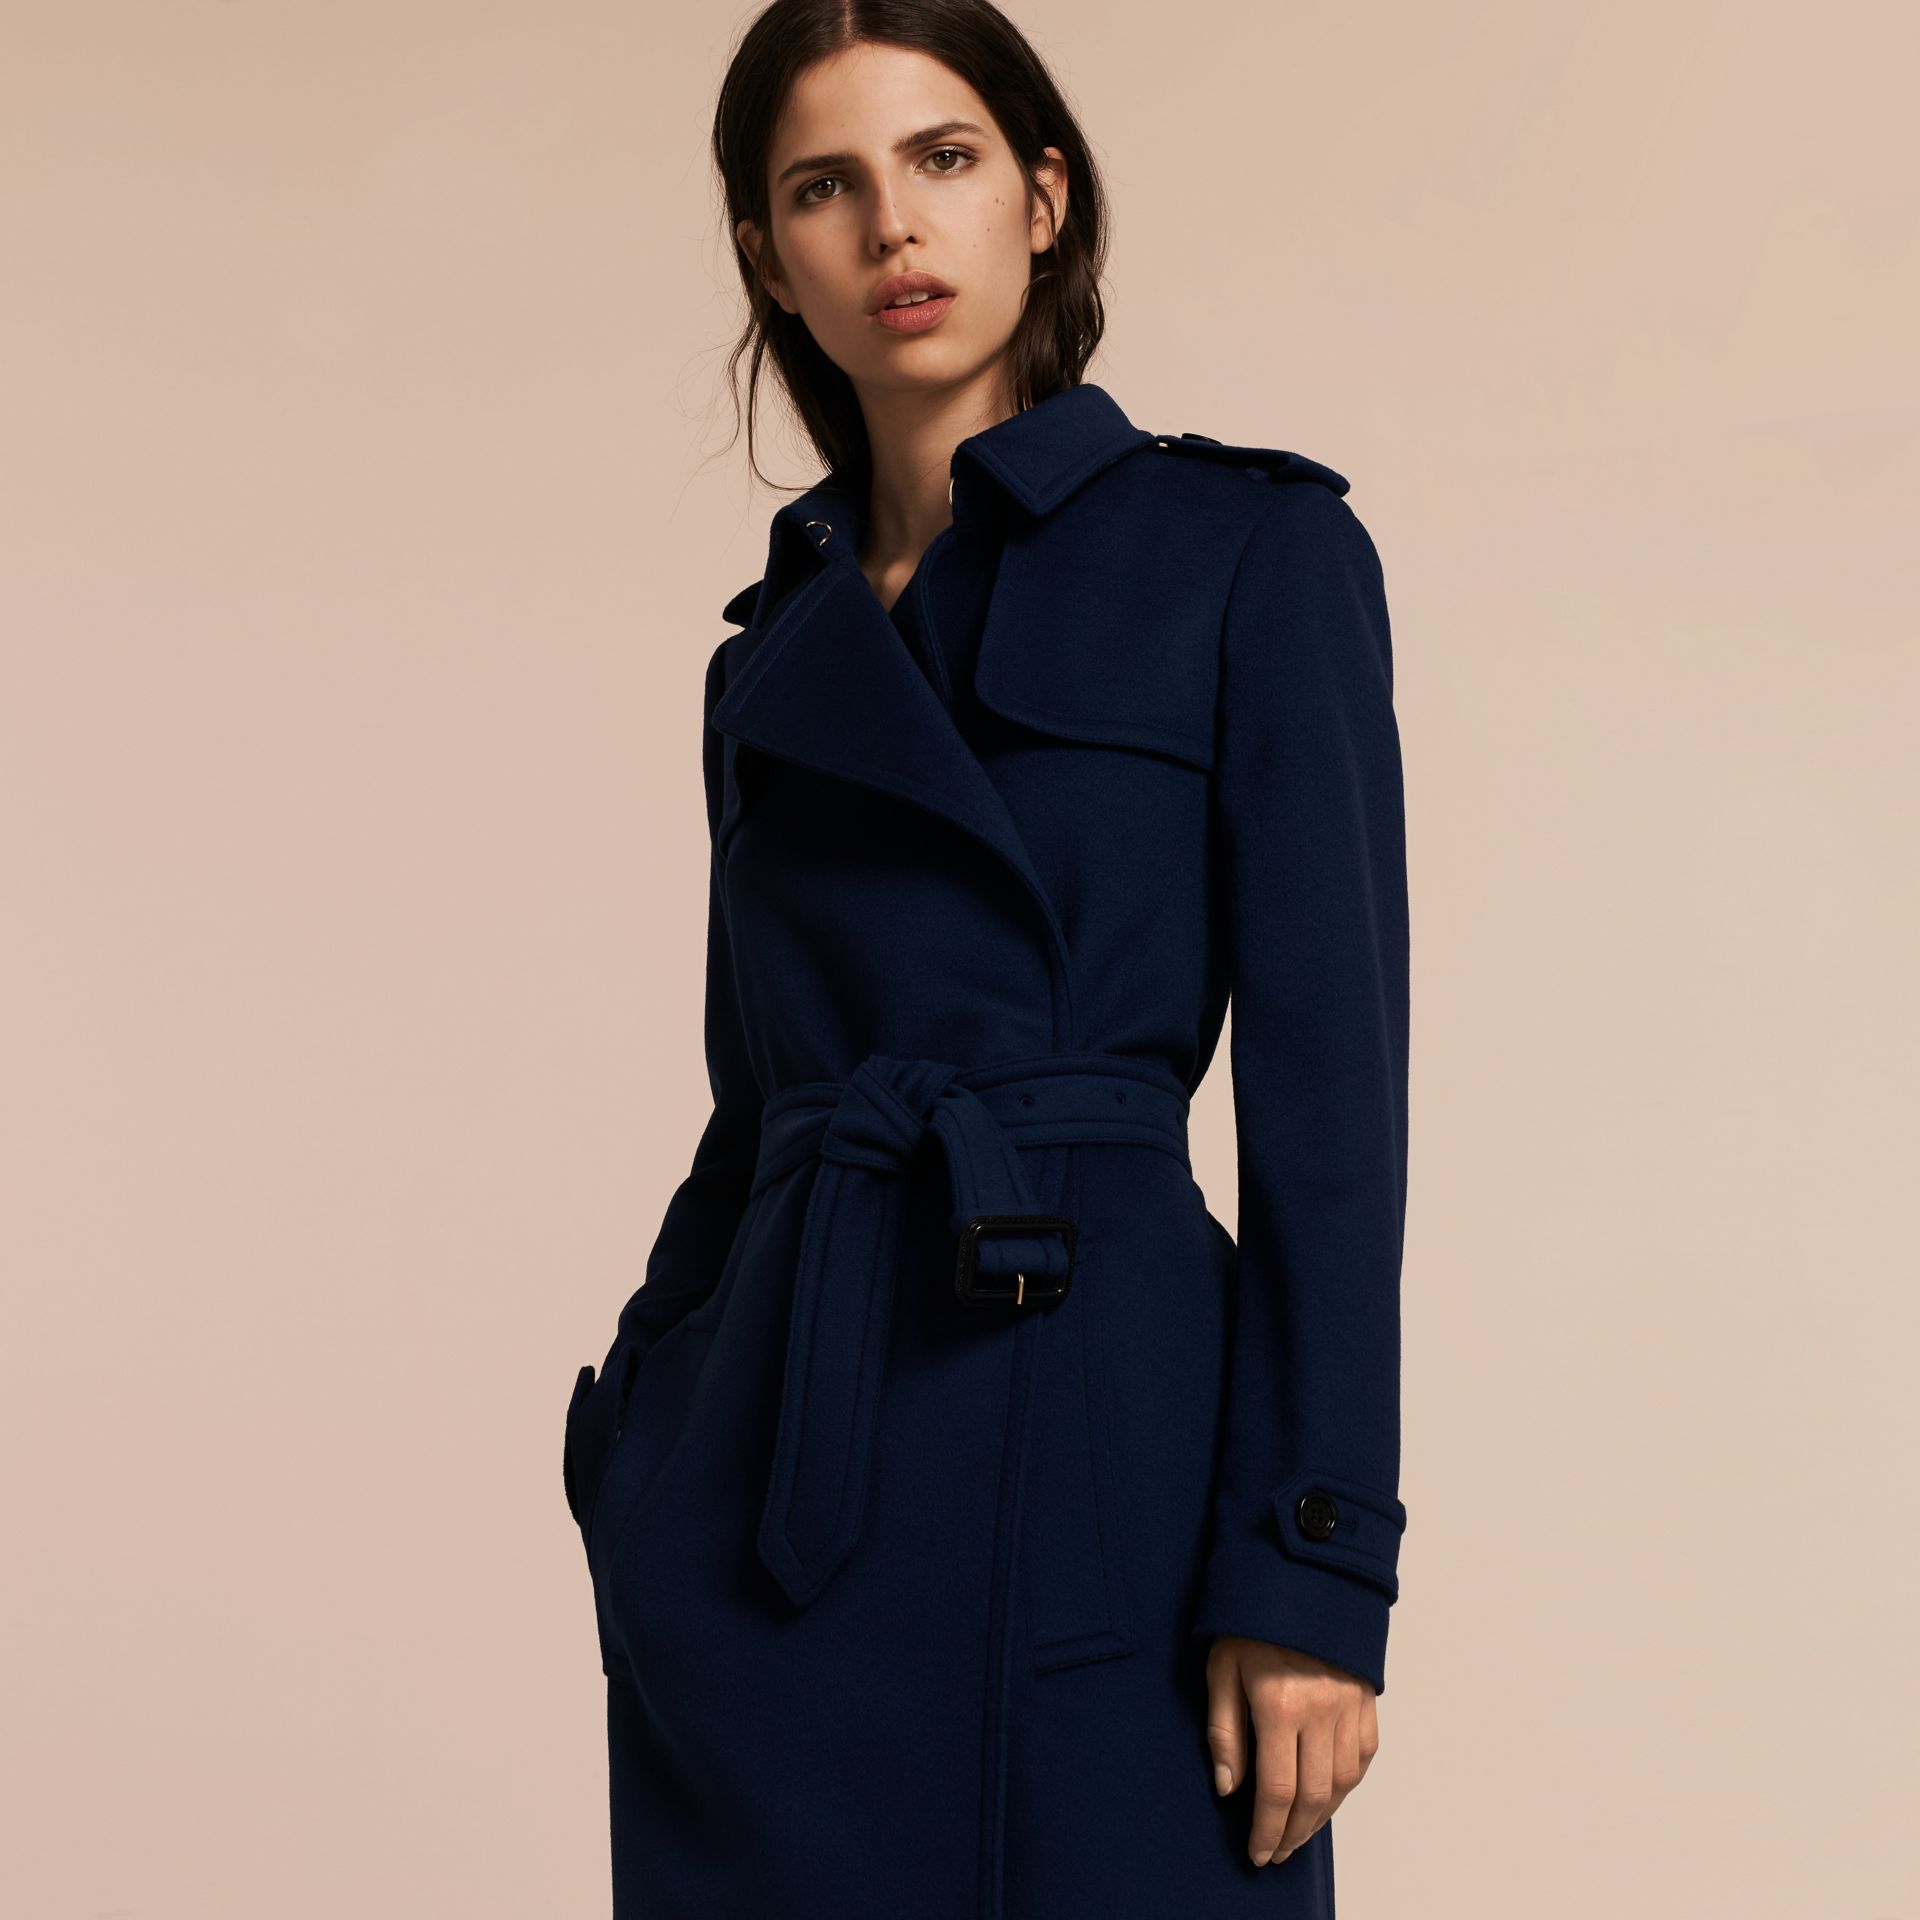 Bleu empire Trench-coat portefeuille en laine et cachemire - photo de la galerie 7